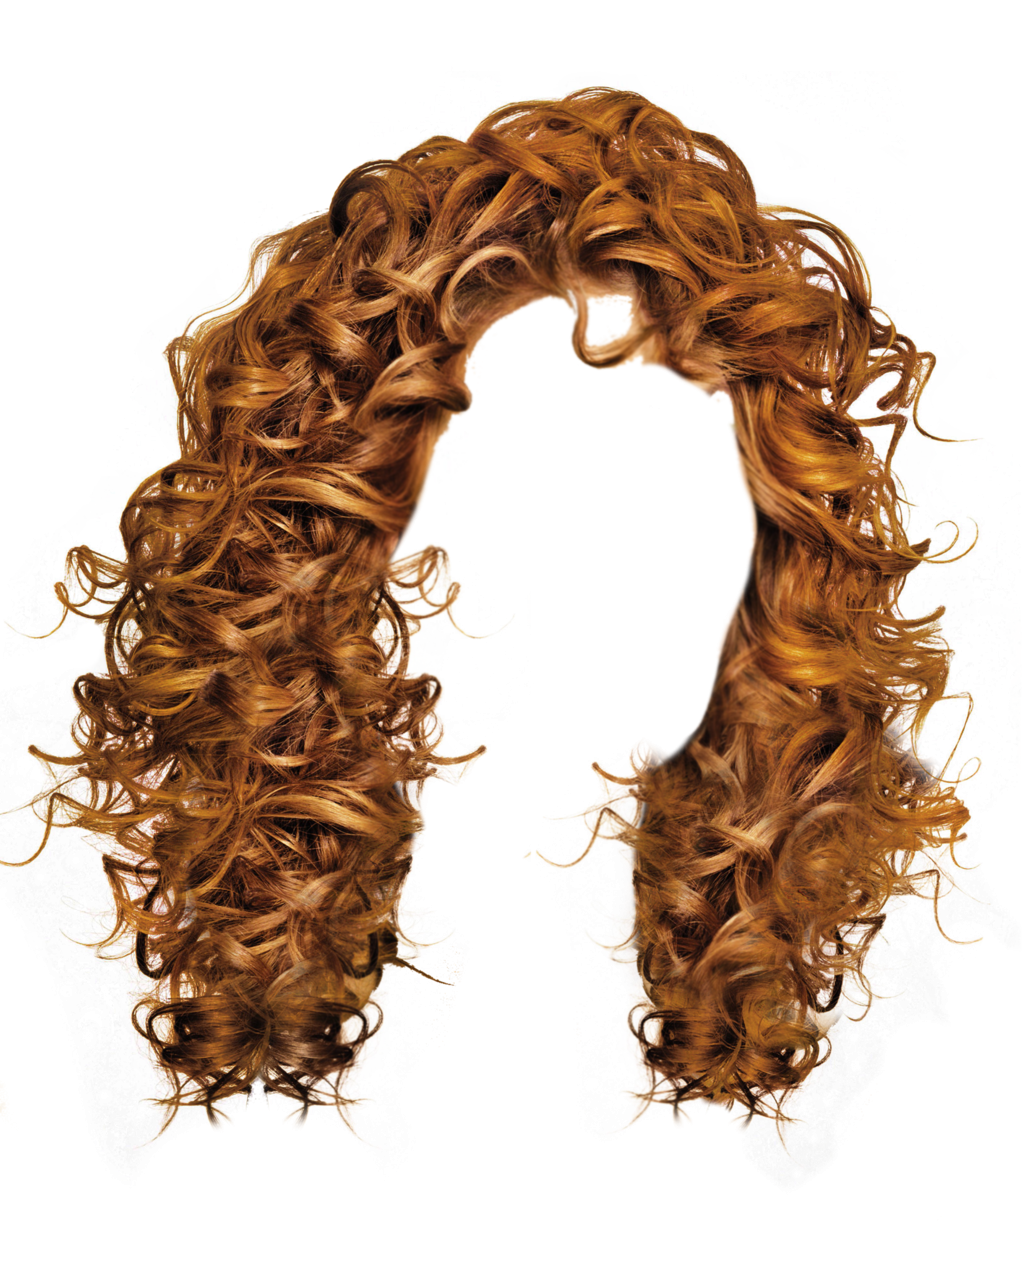 Download Png Image Women Hair Png Image Hair Png Brown Curly Hair Curly Hair Styles